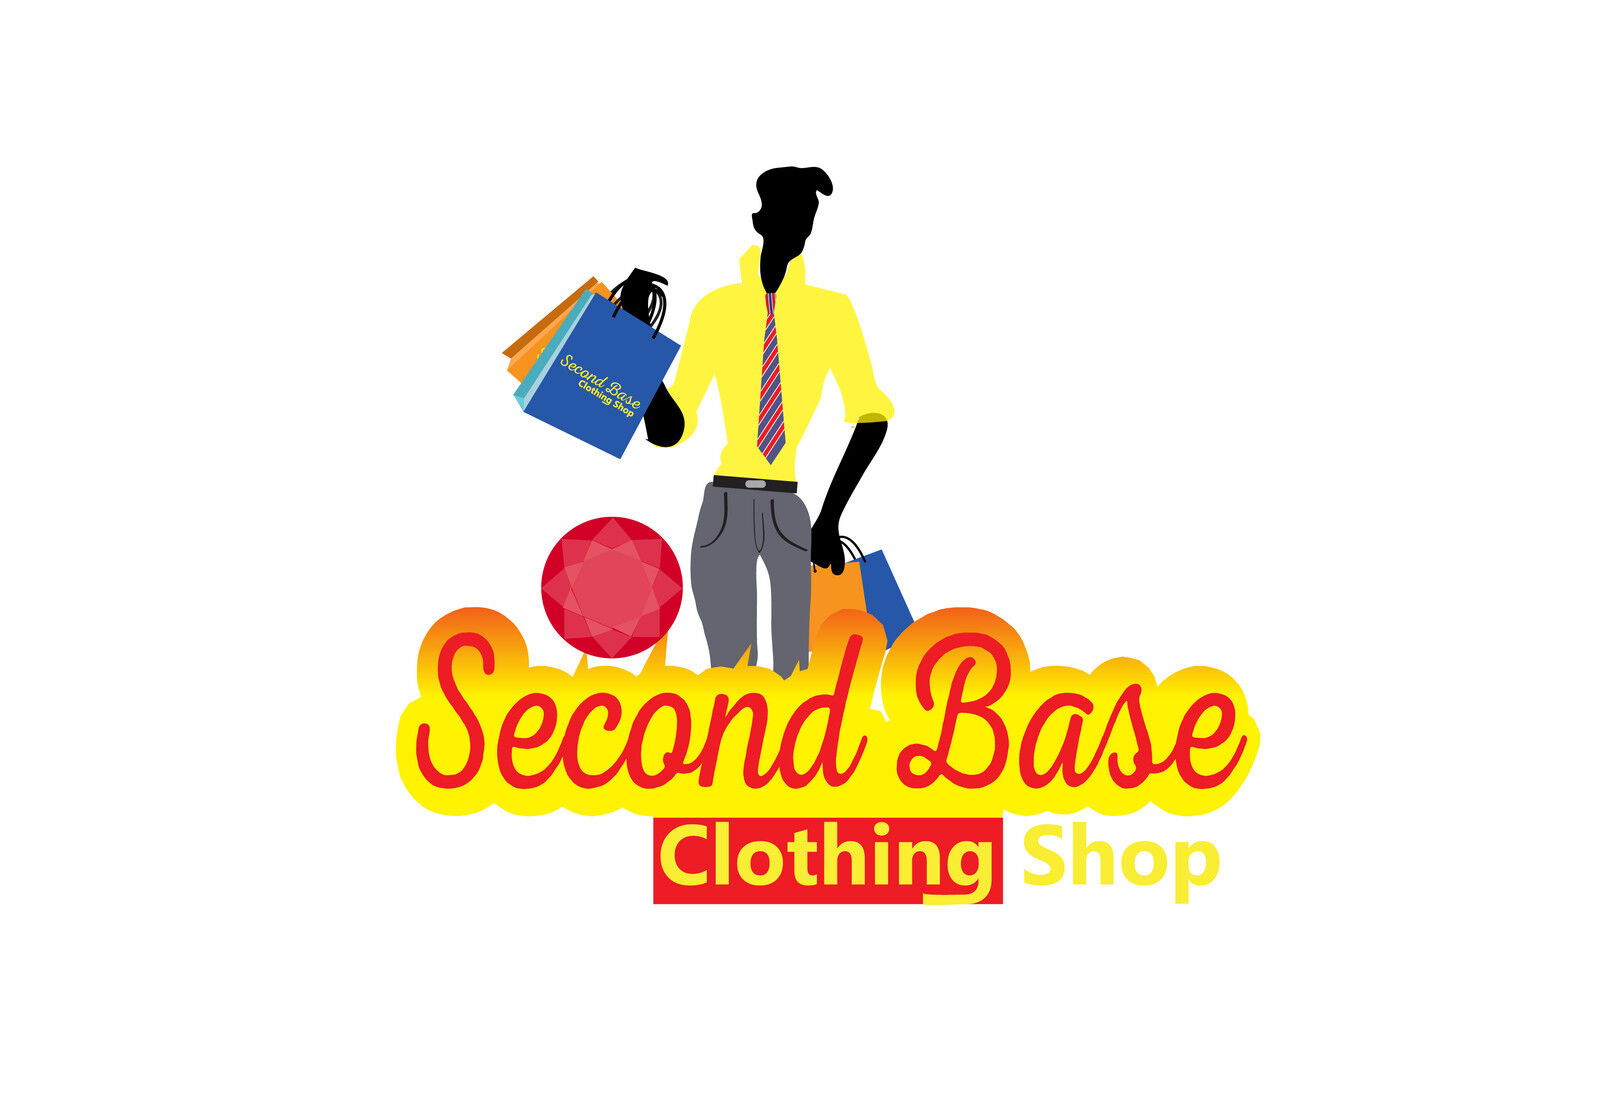 Second Base Clothing Shop